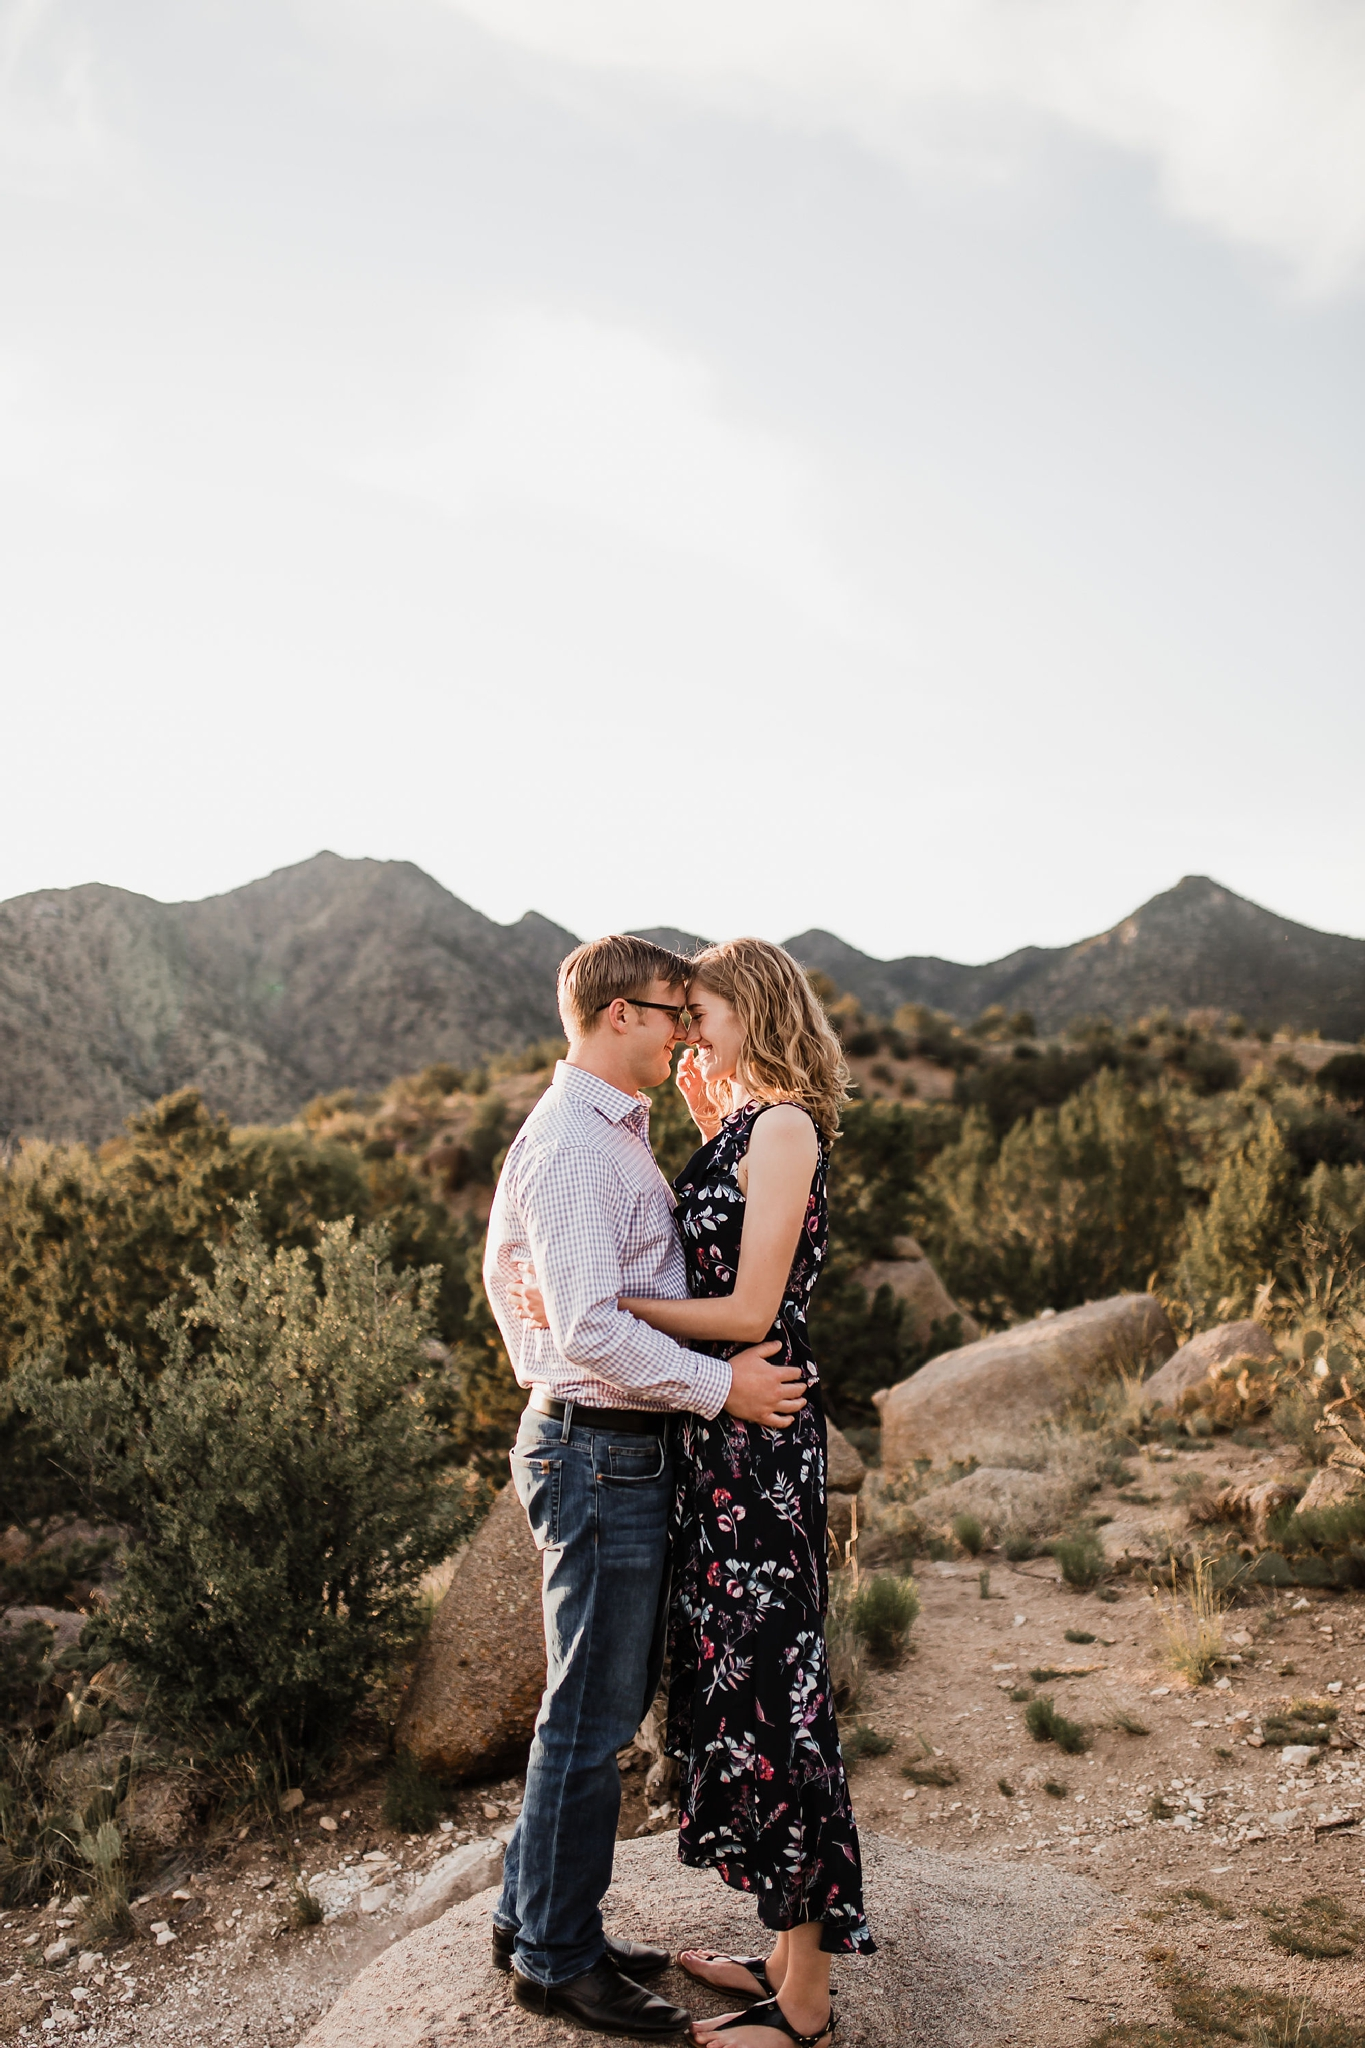 Alicia+lucia+photography+-+albuquerque+wedding+photographer+-+santa+fe+wedding+photography+-+new+mexico+wedding+photographer+-+new+mexico+wedding+-+new+mexico+engagement+-+mountain+engagement+-+casa+perea+wedding_0002.jpg